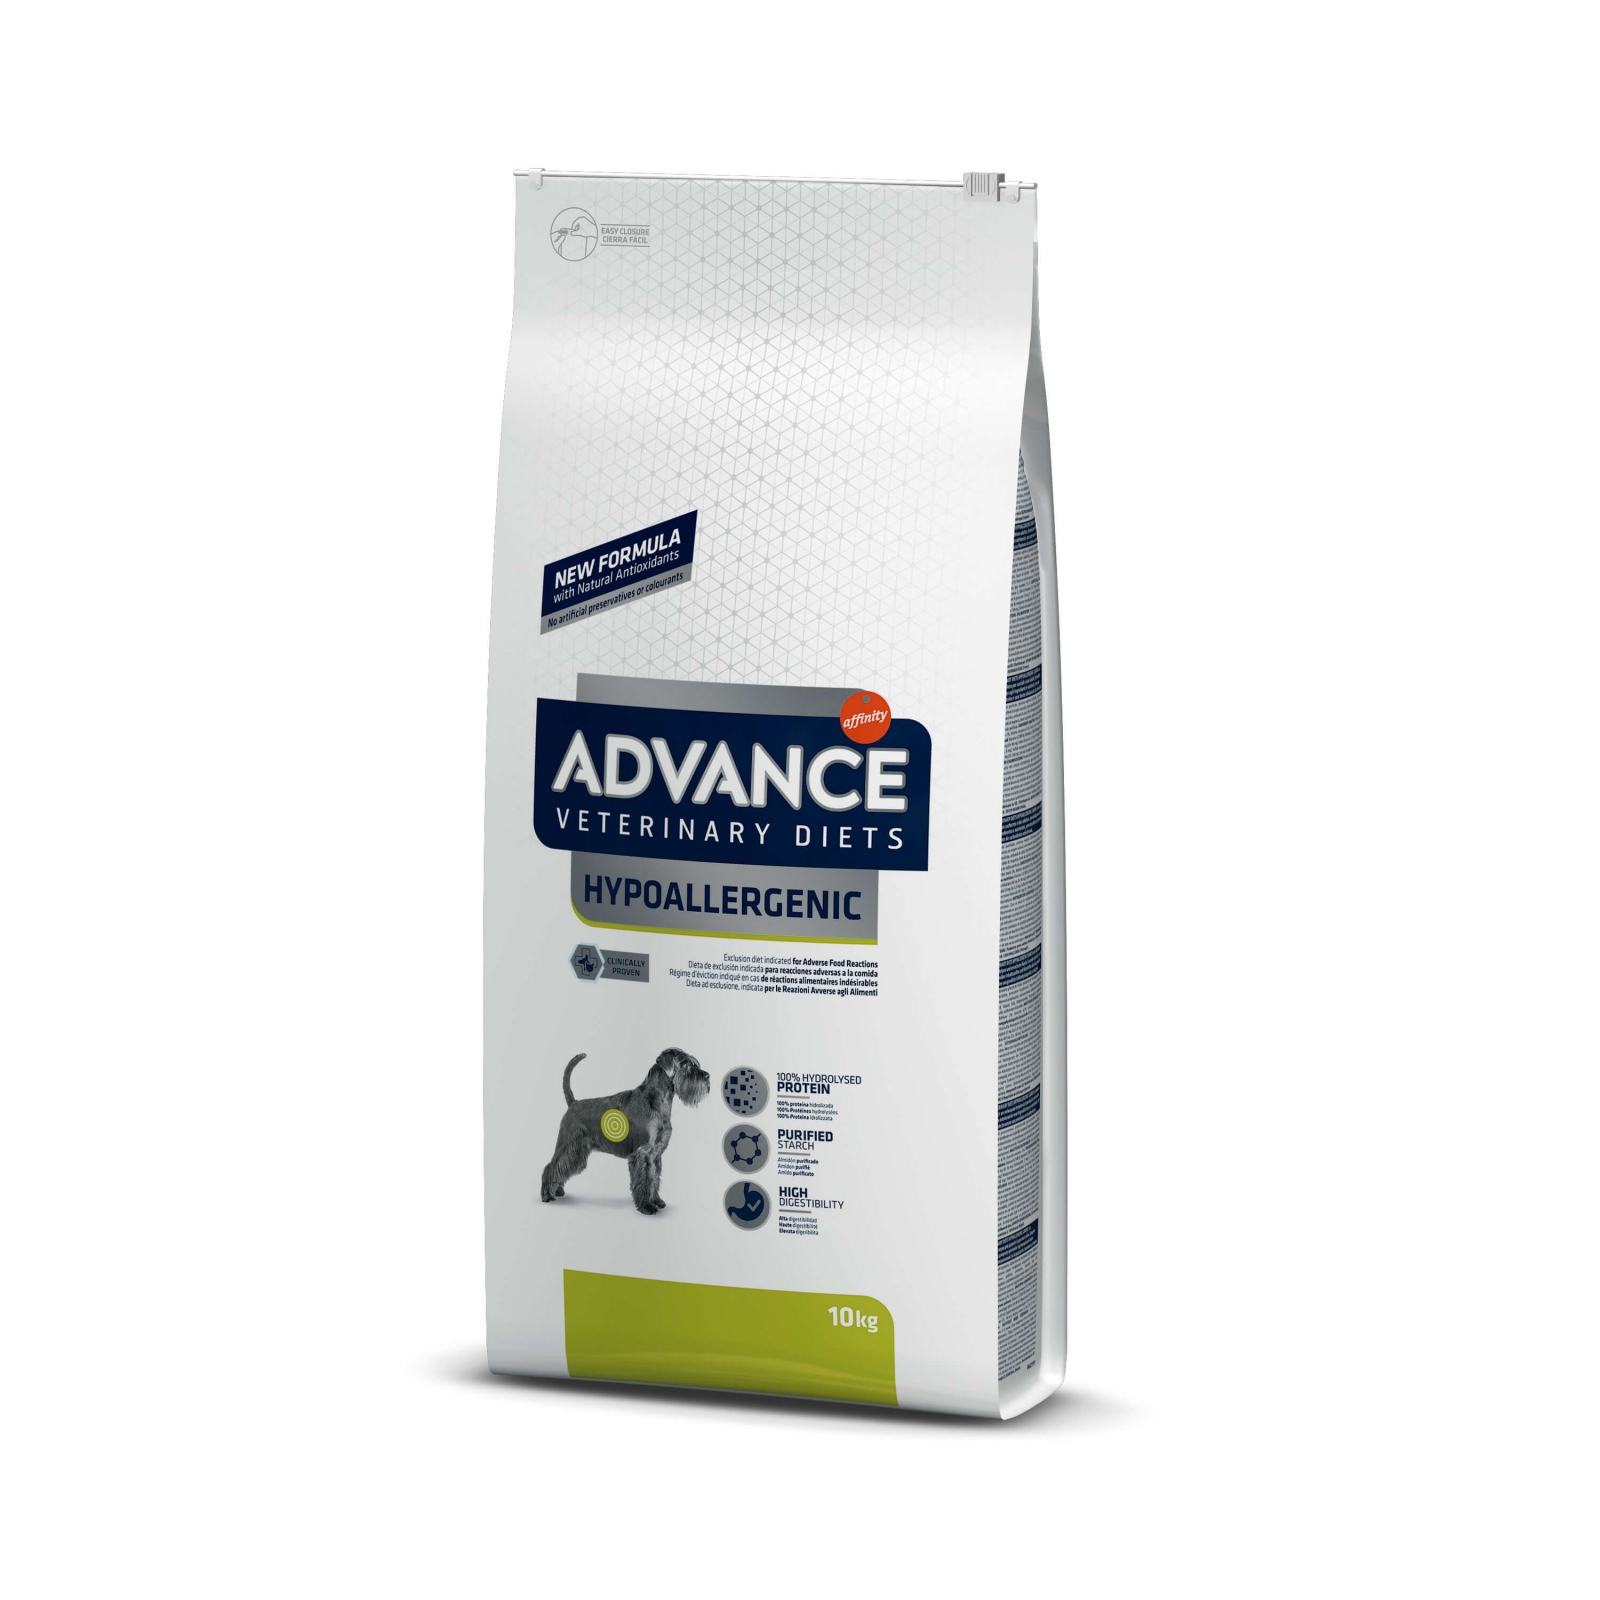 Advance VD Dog Hypoallergenic, 10 kg